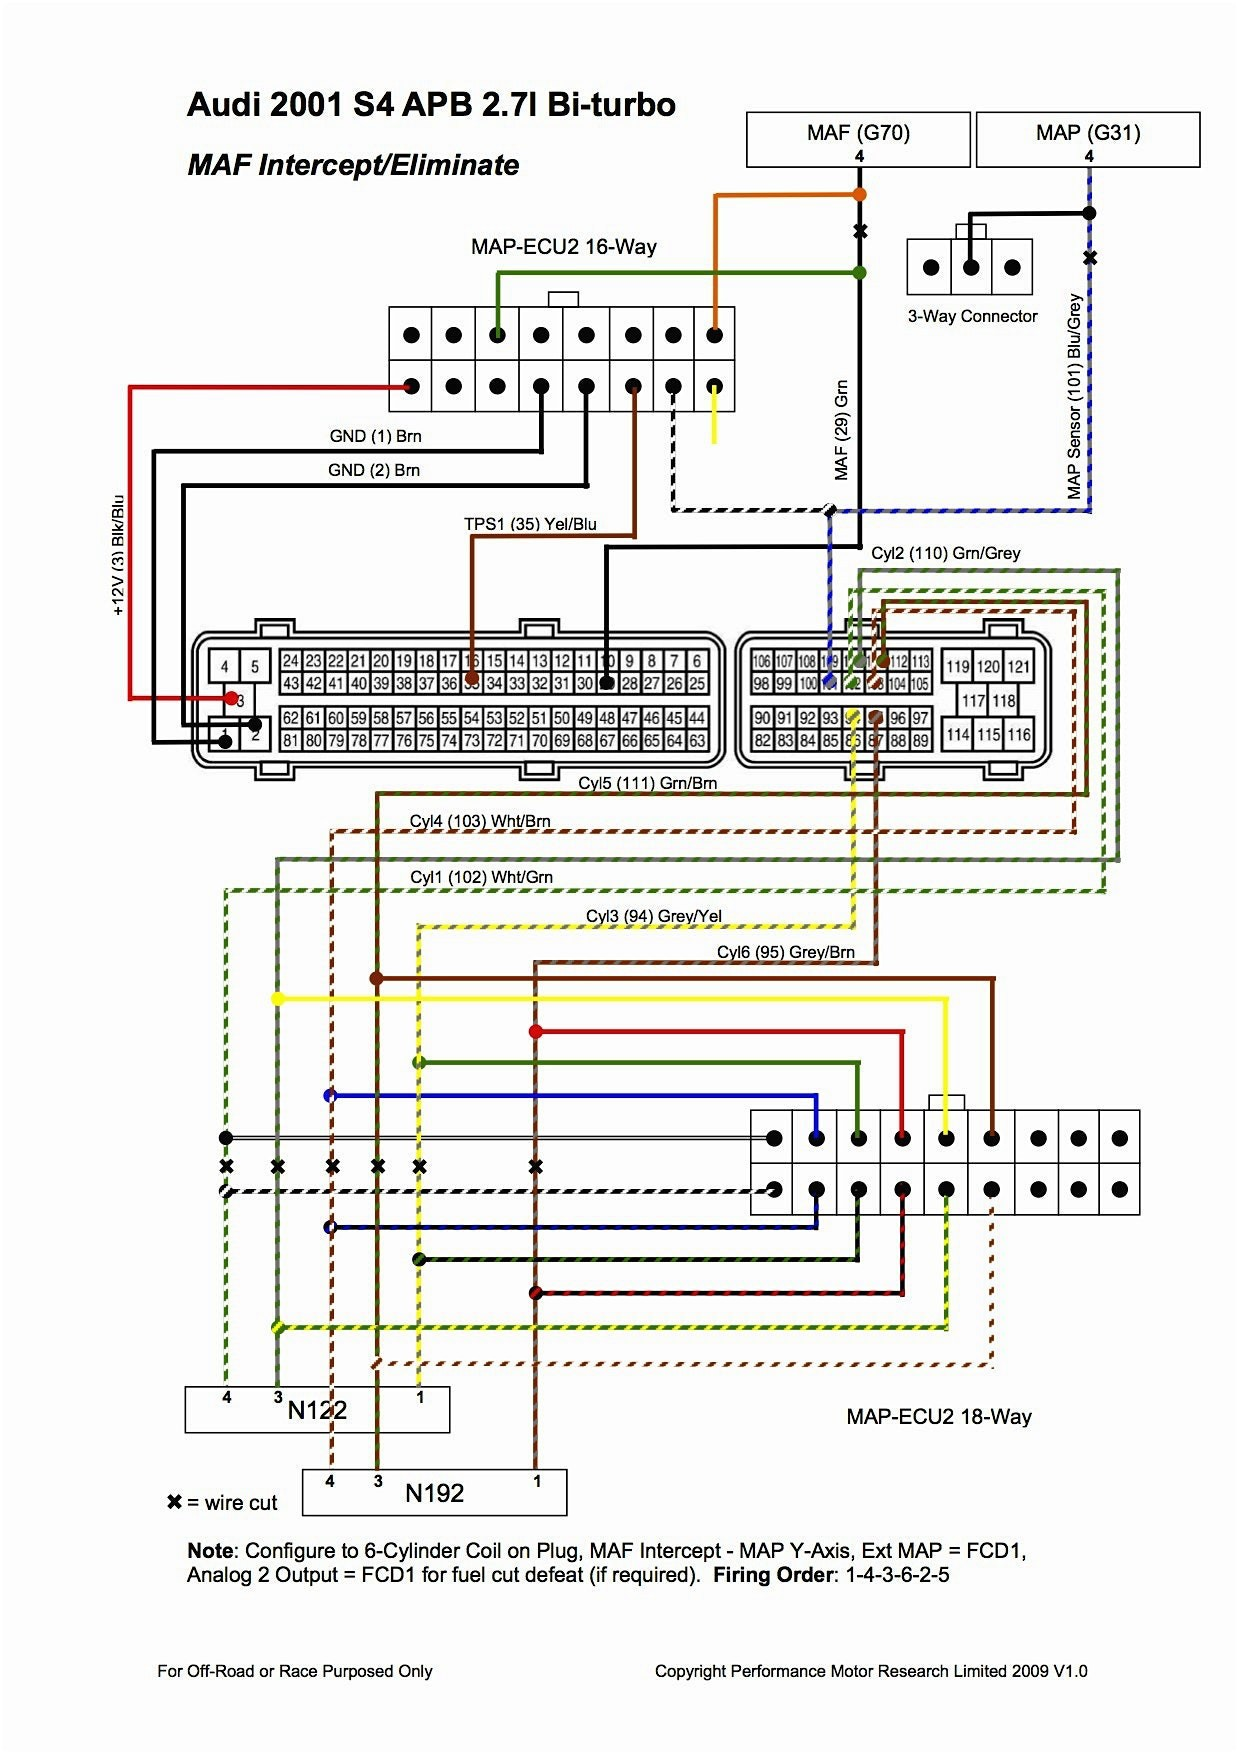 Wiring Diagram 1999 Vw Eurovan - Wiring Diagram Perform steep-abstract -  steep-abstract.bovaribernesiclub.it | 1993 Eurovan Wiring Diagram Tail Lights |  | steep-abstract.bovaribernesiclub.it